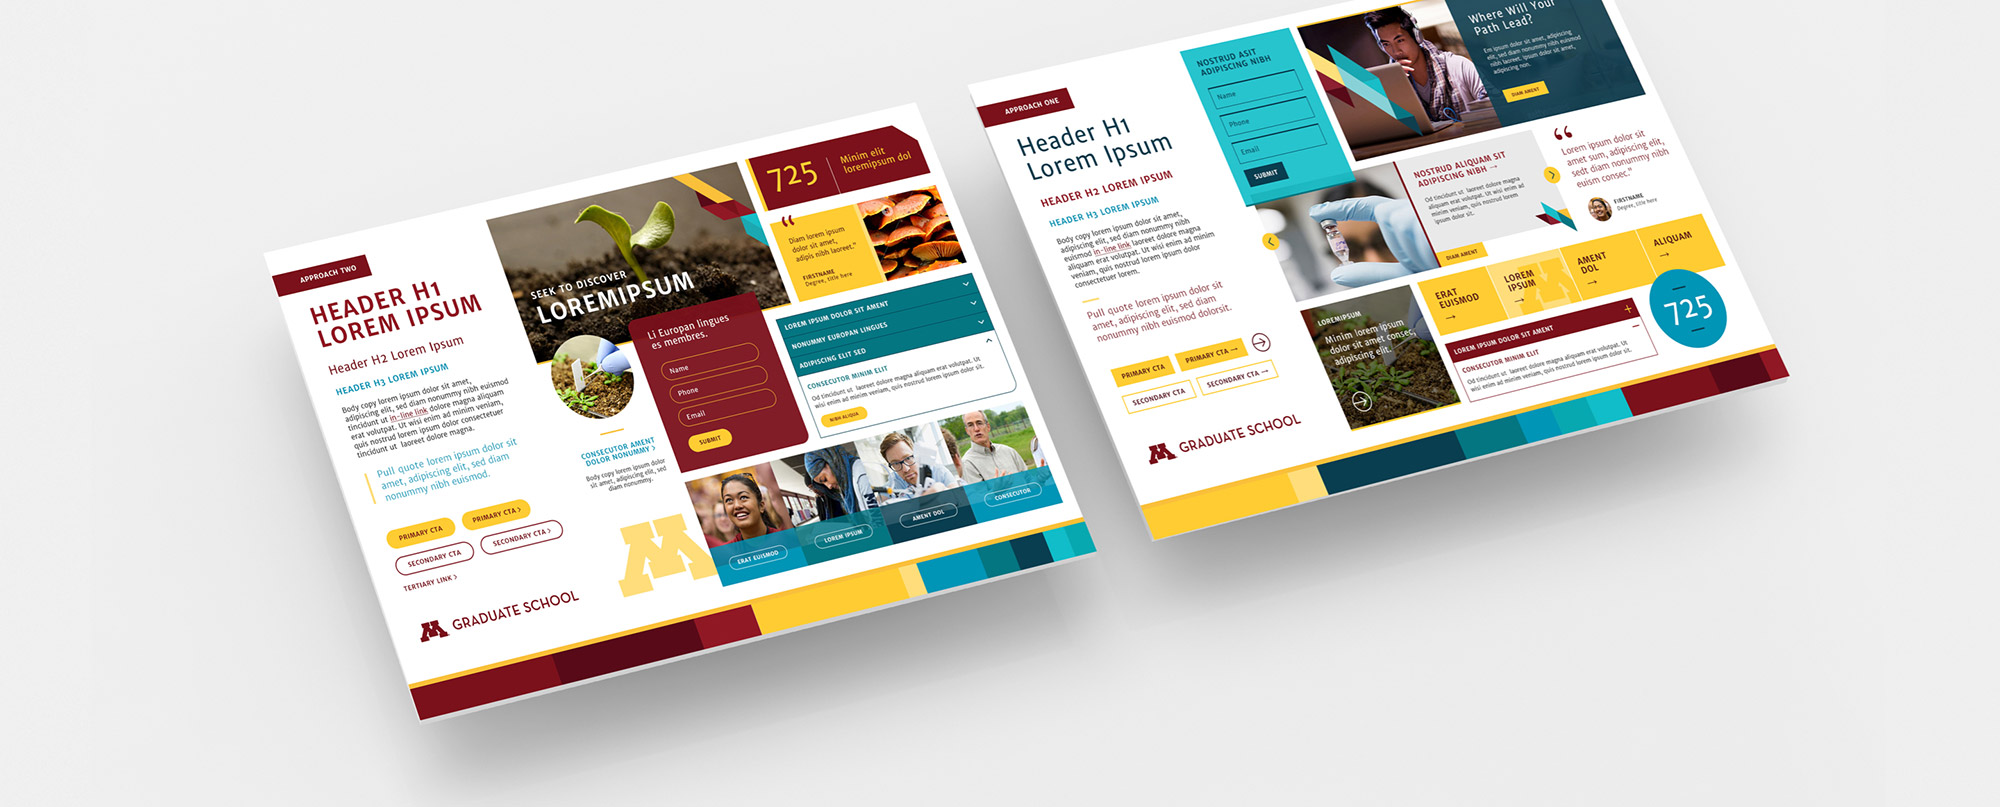 Style tiles used to help guide the design of the University of Minnesota Graduate School website.